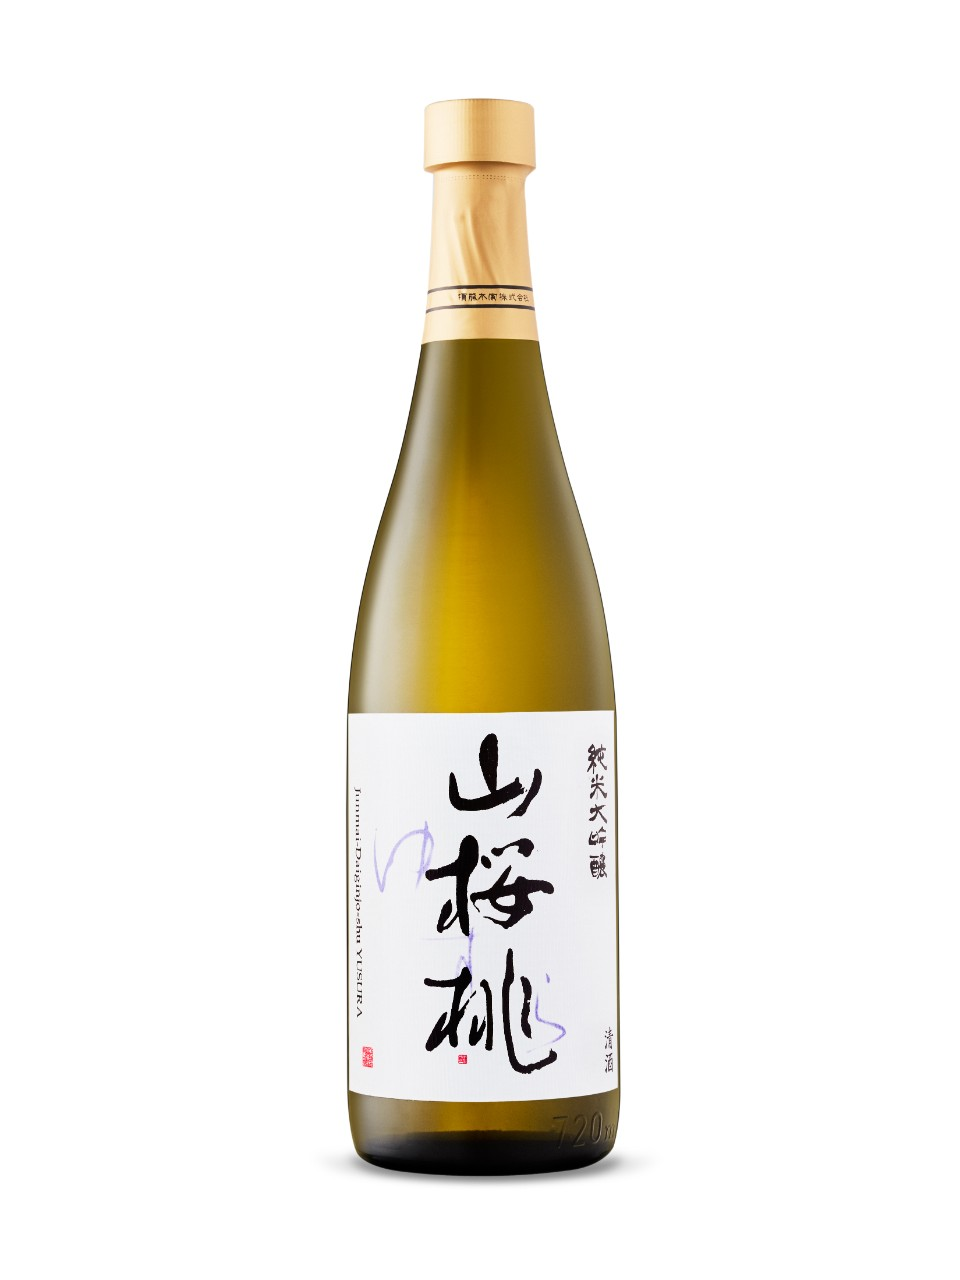 Satonhomare Pride of the Village Junmai Daiginjo shu Yusura